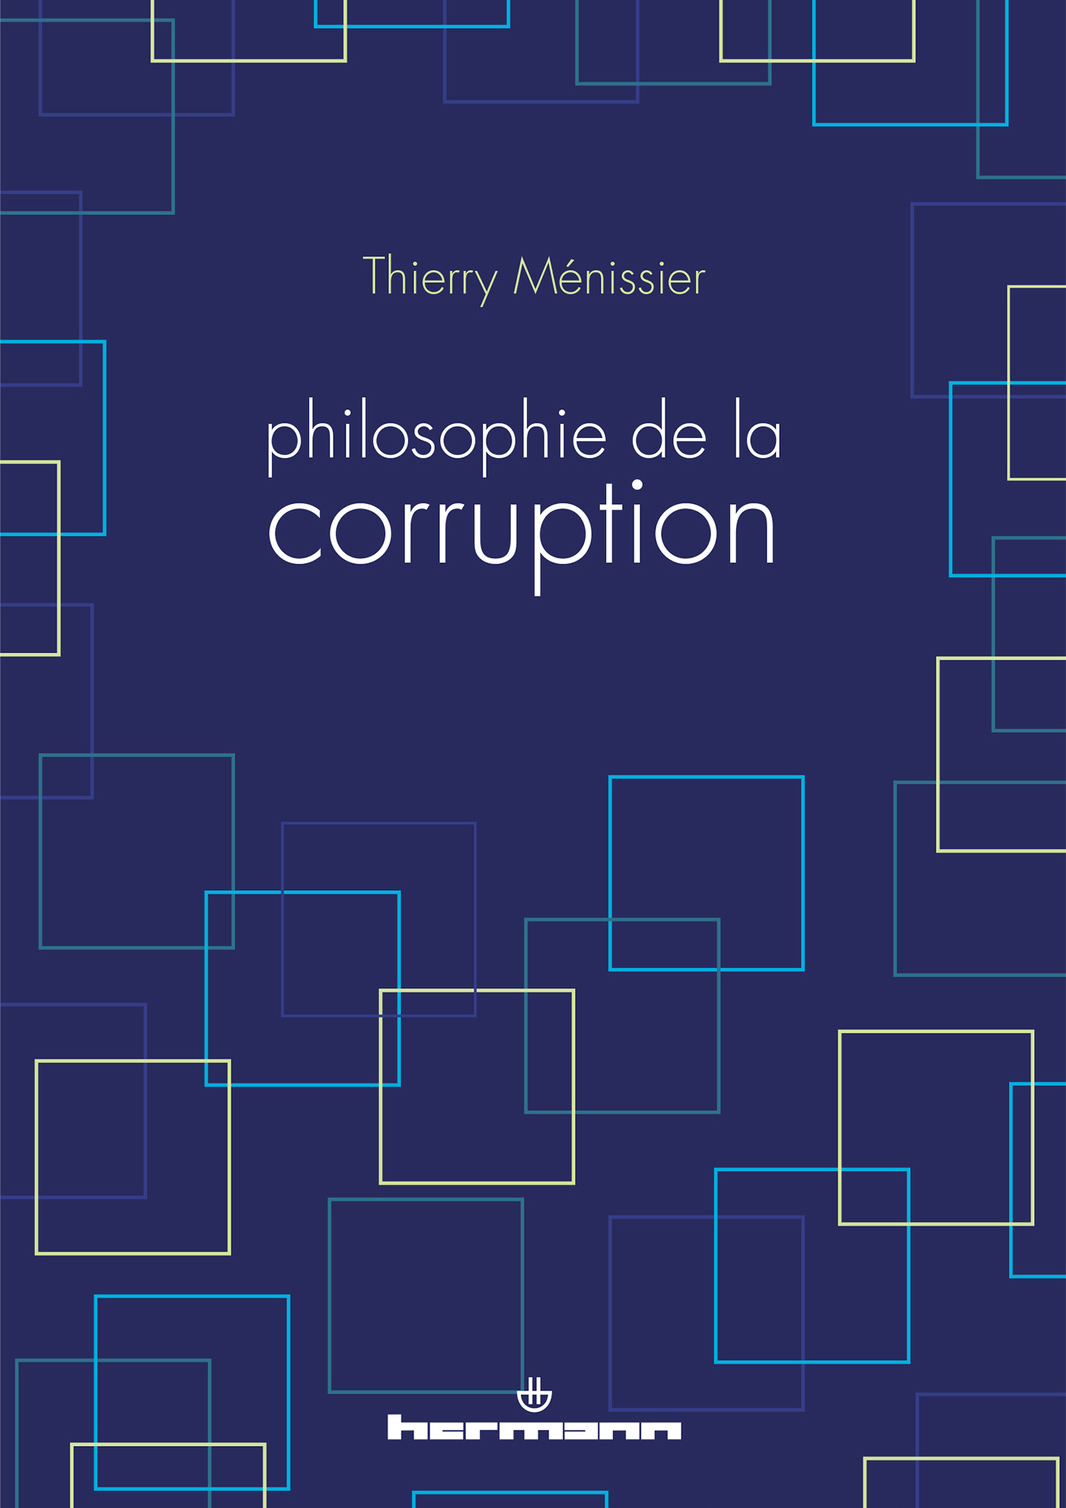 Couverture de Philosophie de la corruption de Thierry Ménissier